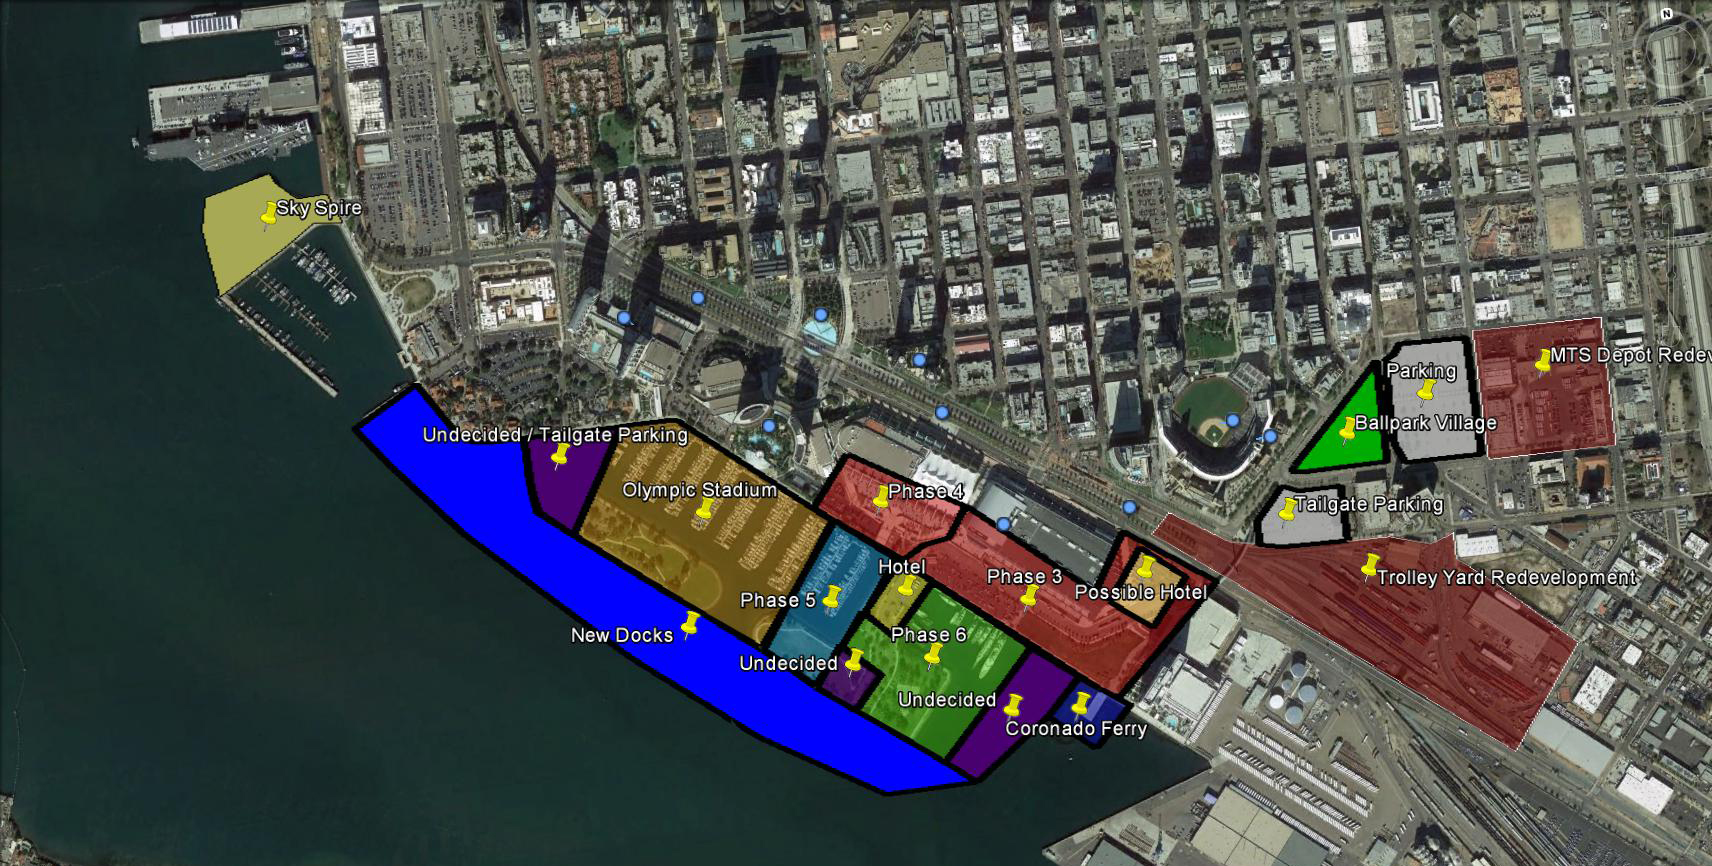 Option 2 Stadium Zoning